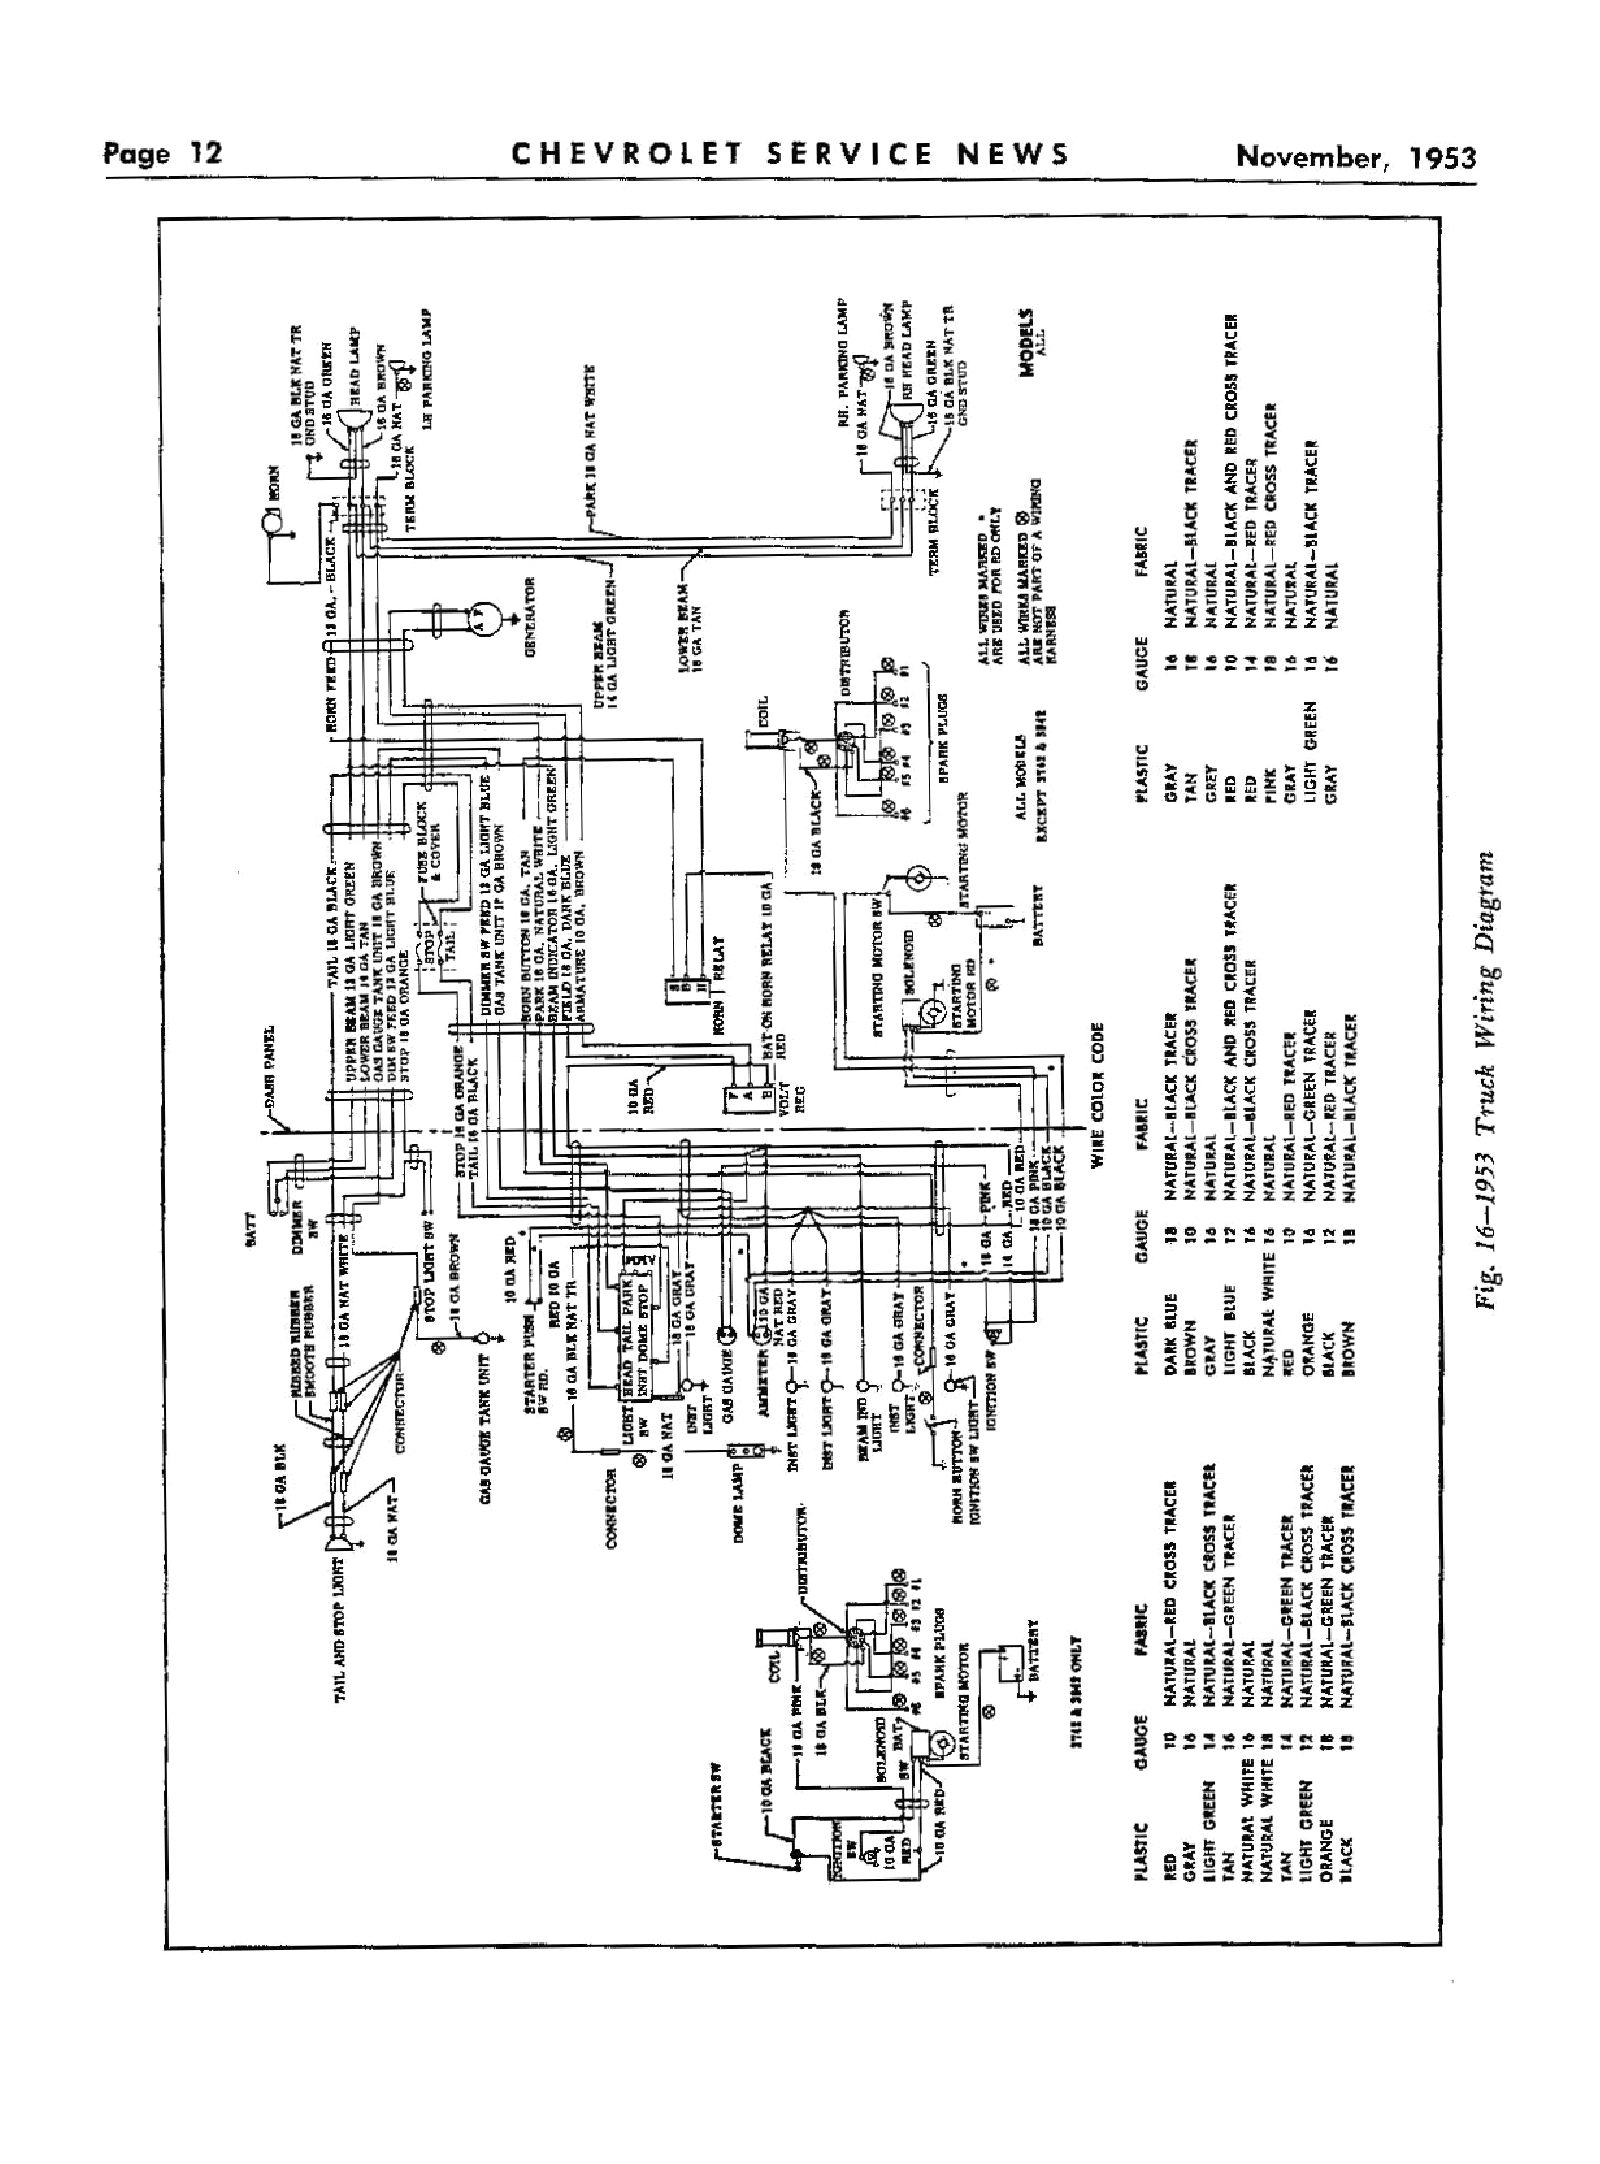 Wiring Diagram For 1959 Chevy Truck Automotive 58 Diagrams Rh Oldcarmanualproject Com 97 1958